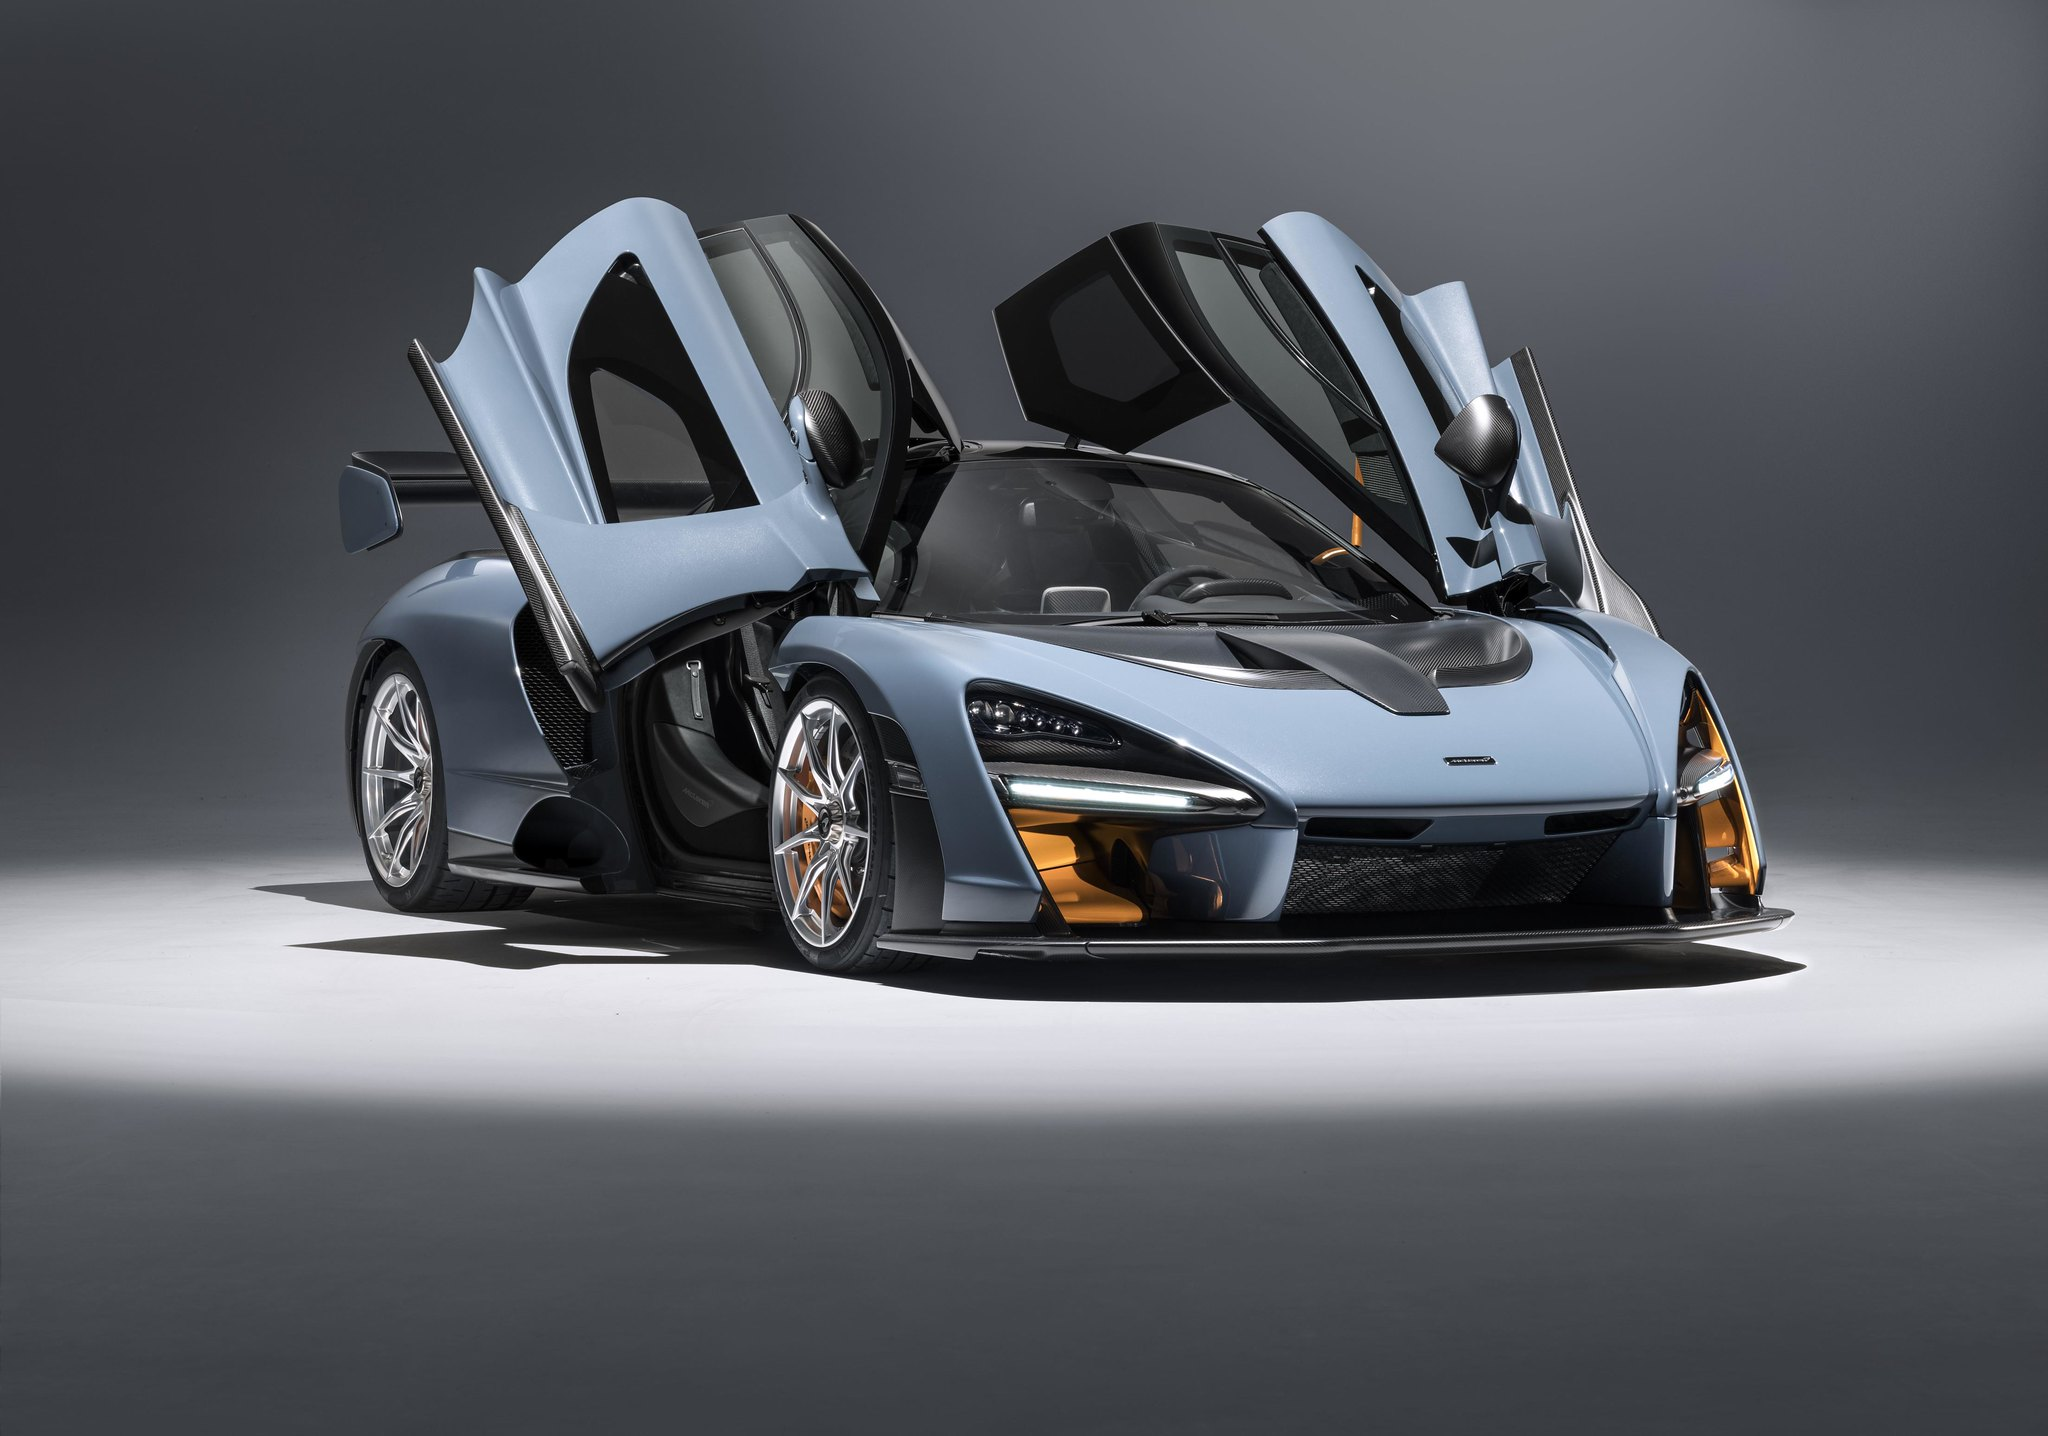 McLaren Senna: Zero to 62 in 2.8 seconds, 211-mph top speed